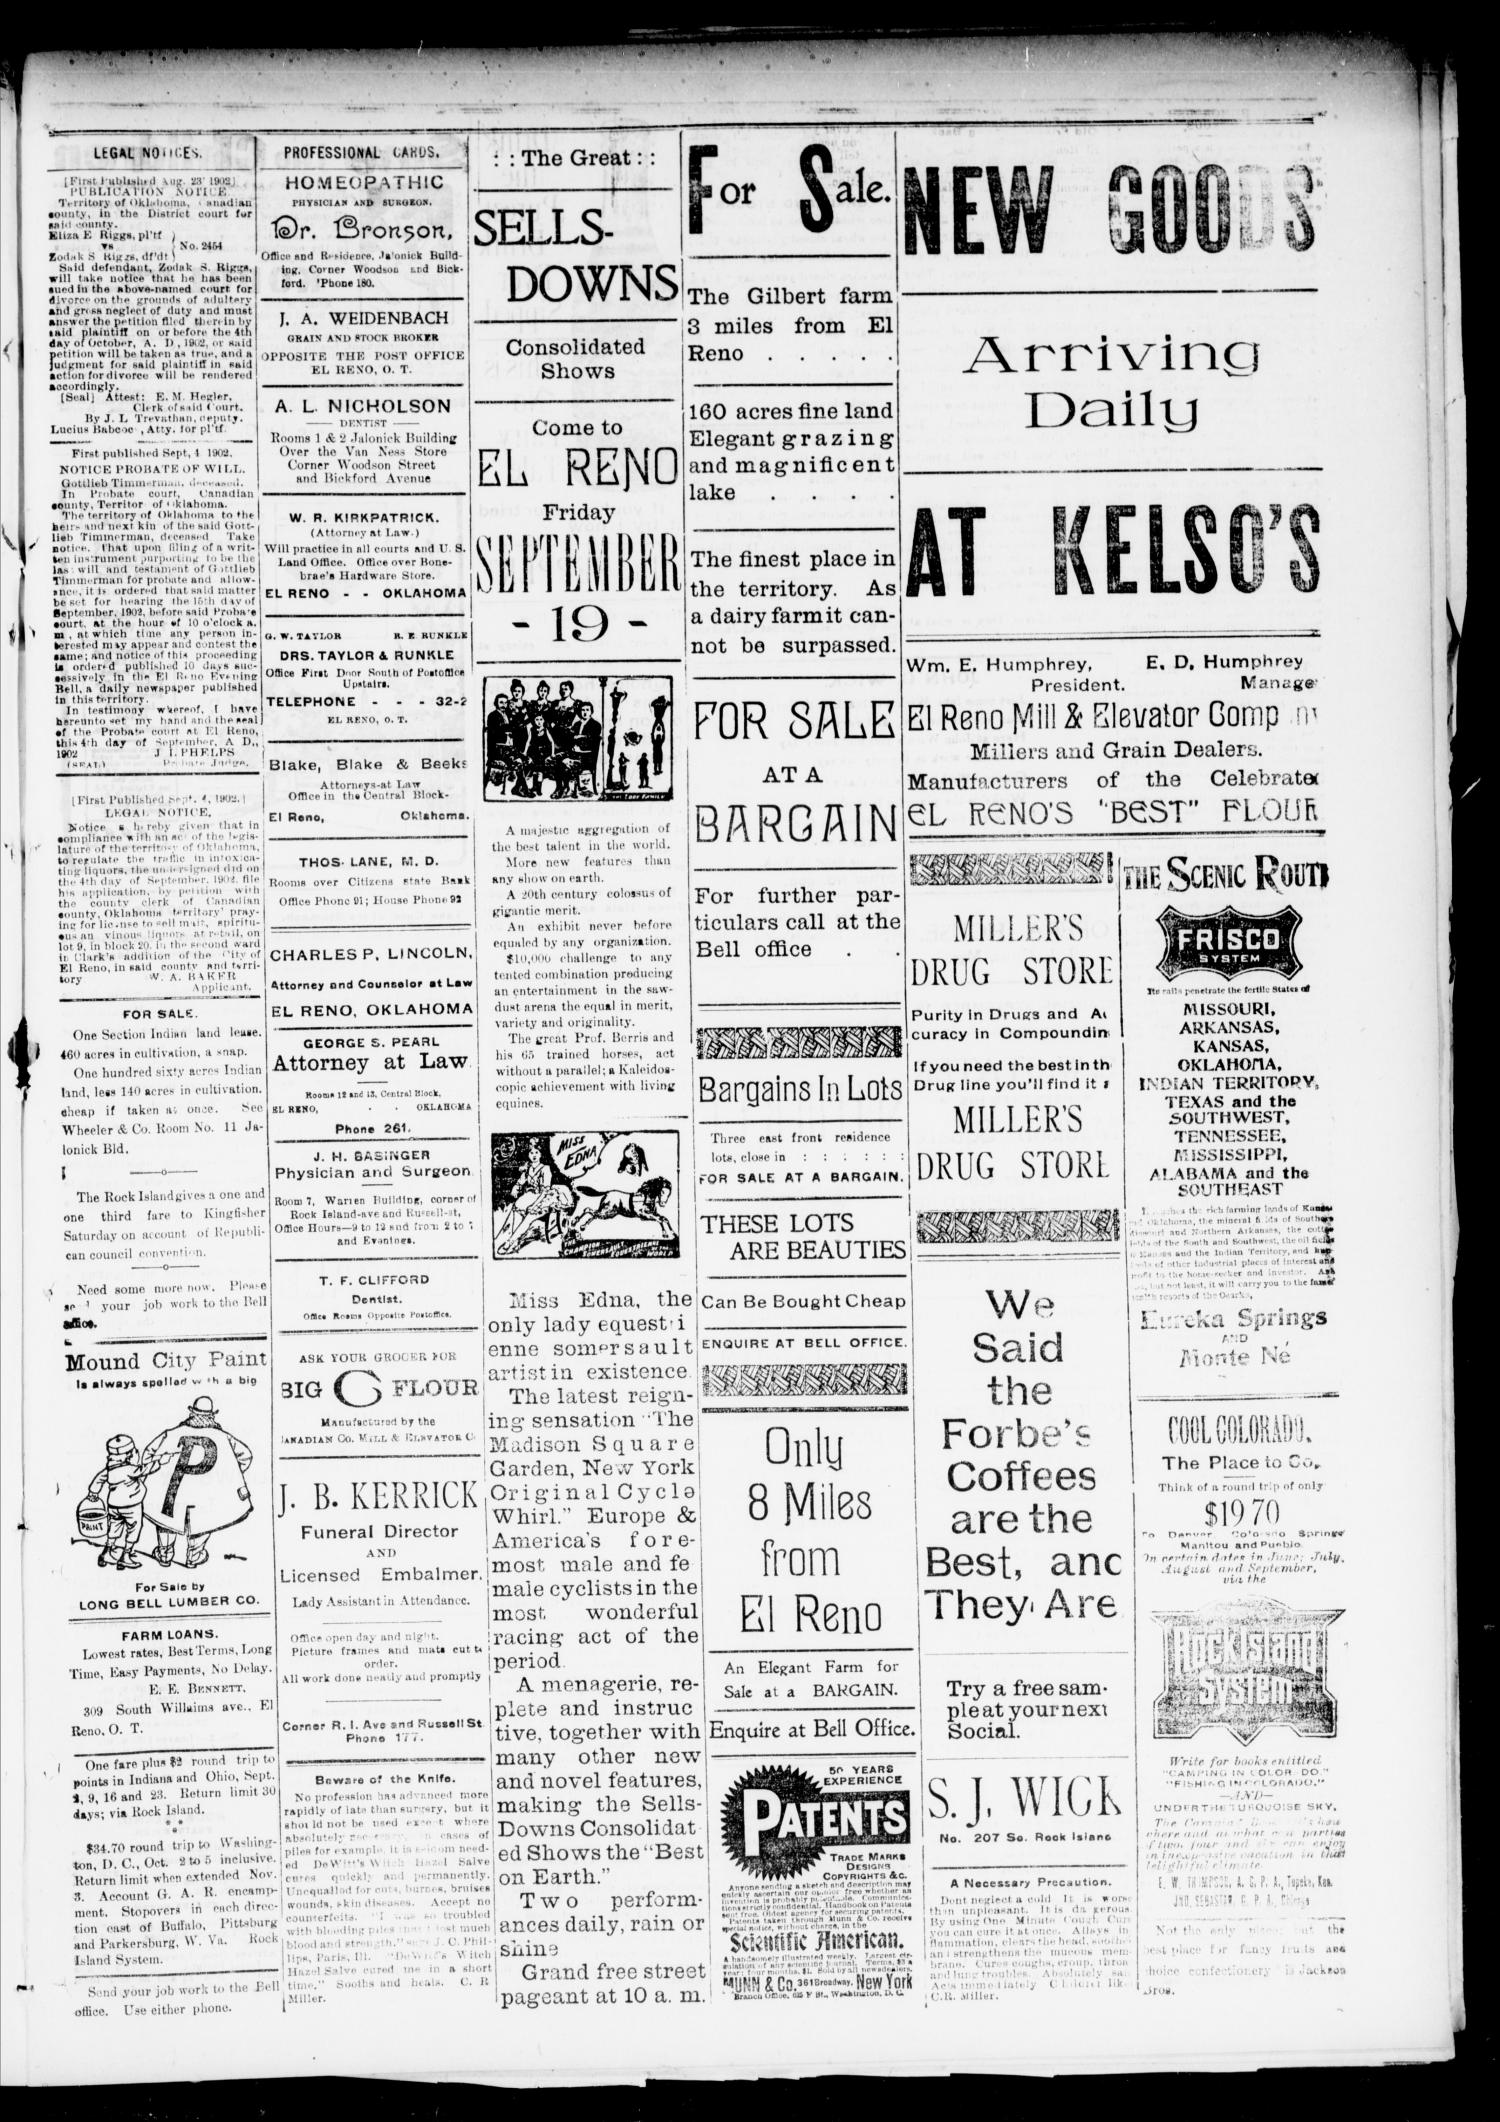 El Reno Evening Bell. (El Reno, Okla.), Vol. 8, No. 14, Ed. 1 Friday, September 12, 1902                                                                                                      [Sequence #]: 3 of 4